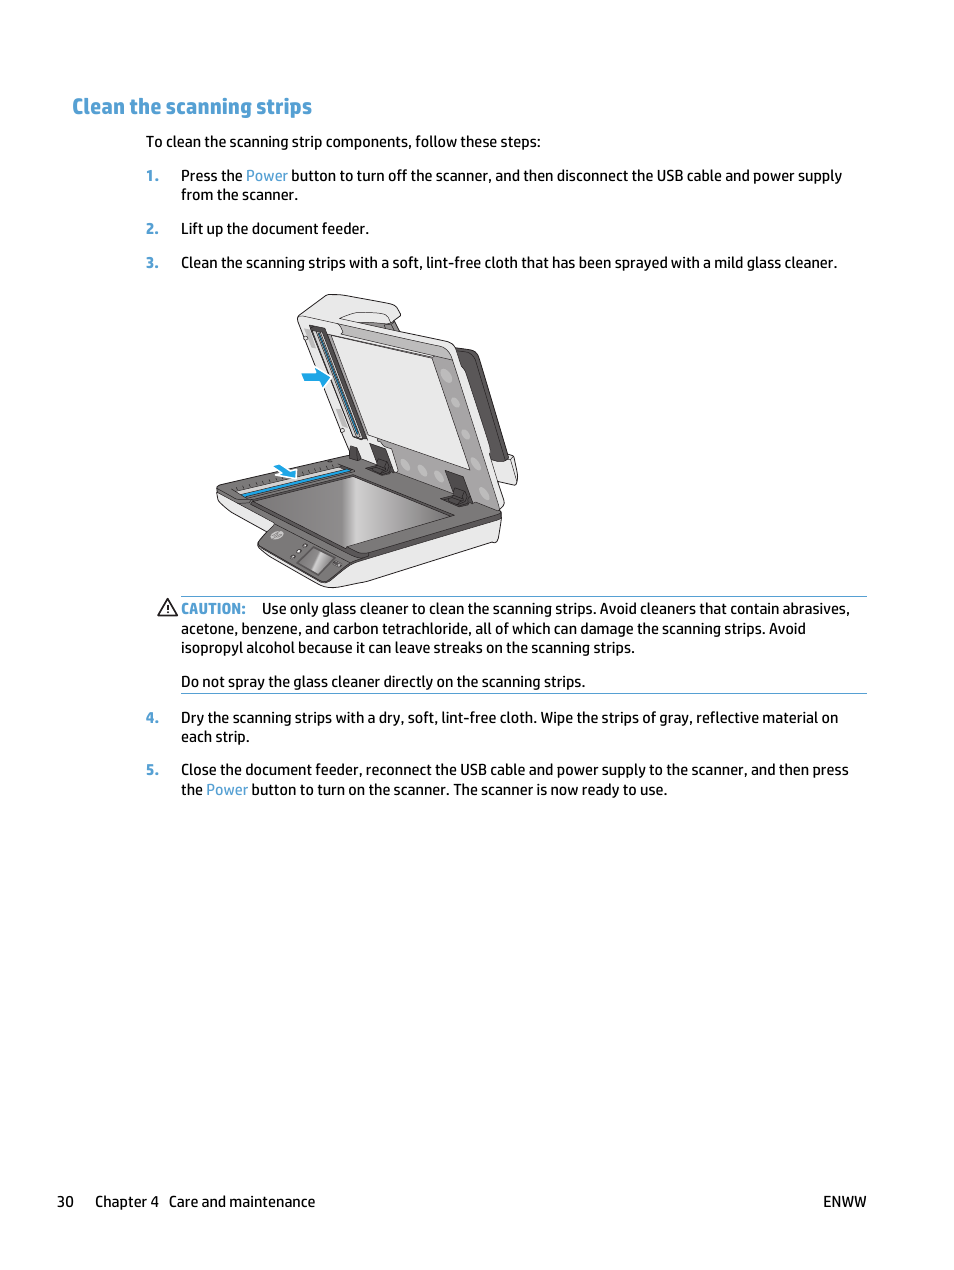 Clean the scanning strips | HP ScanJet Pro 4500 fn1 User Manual